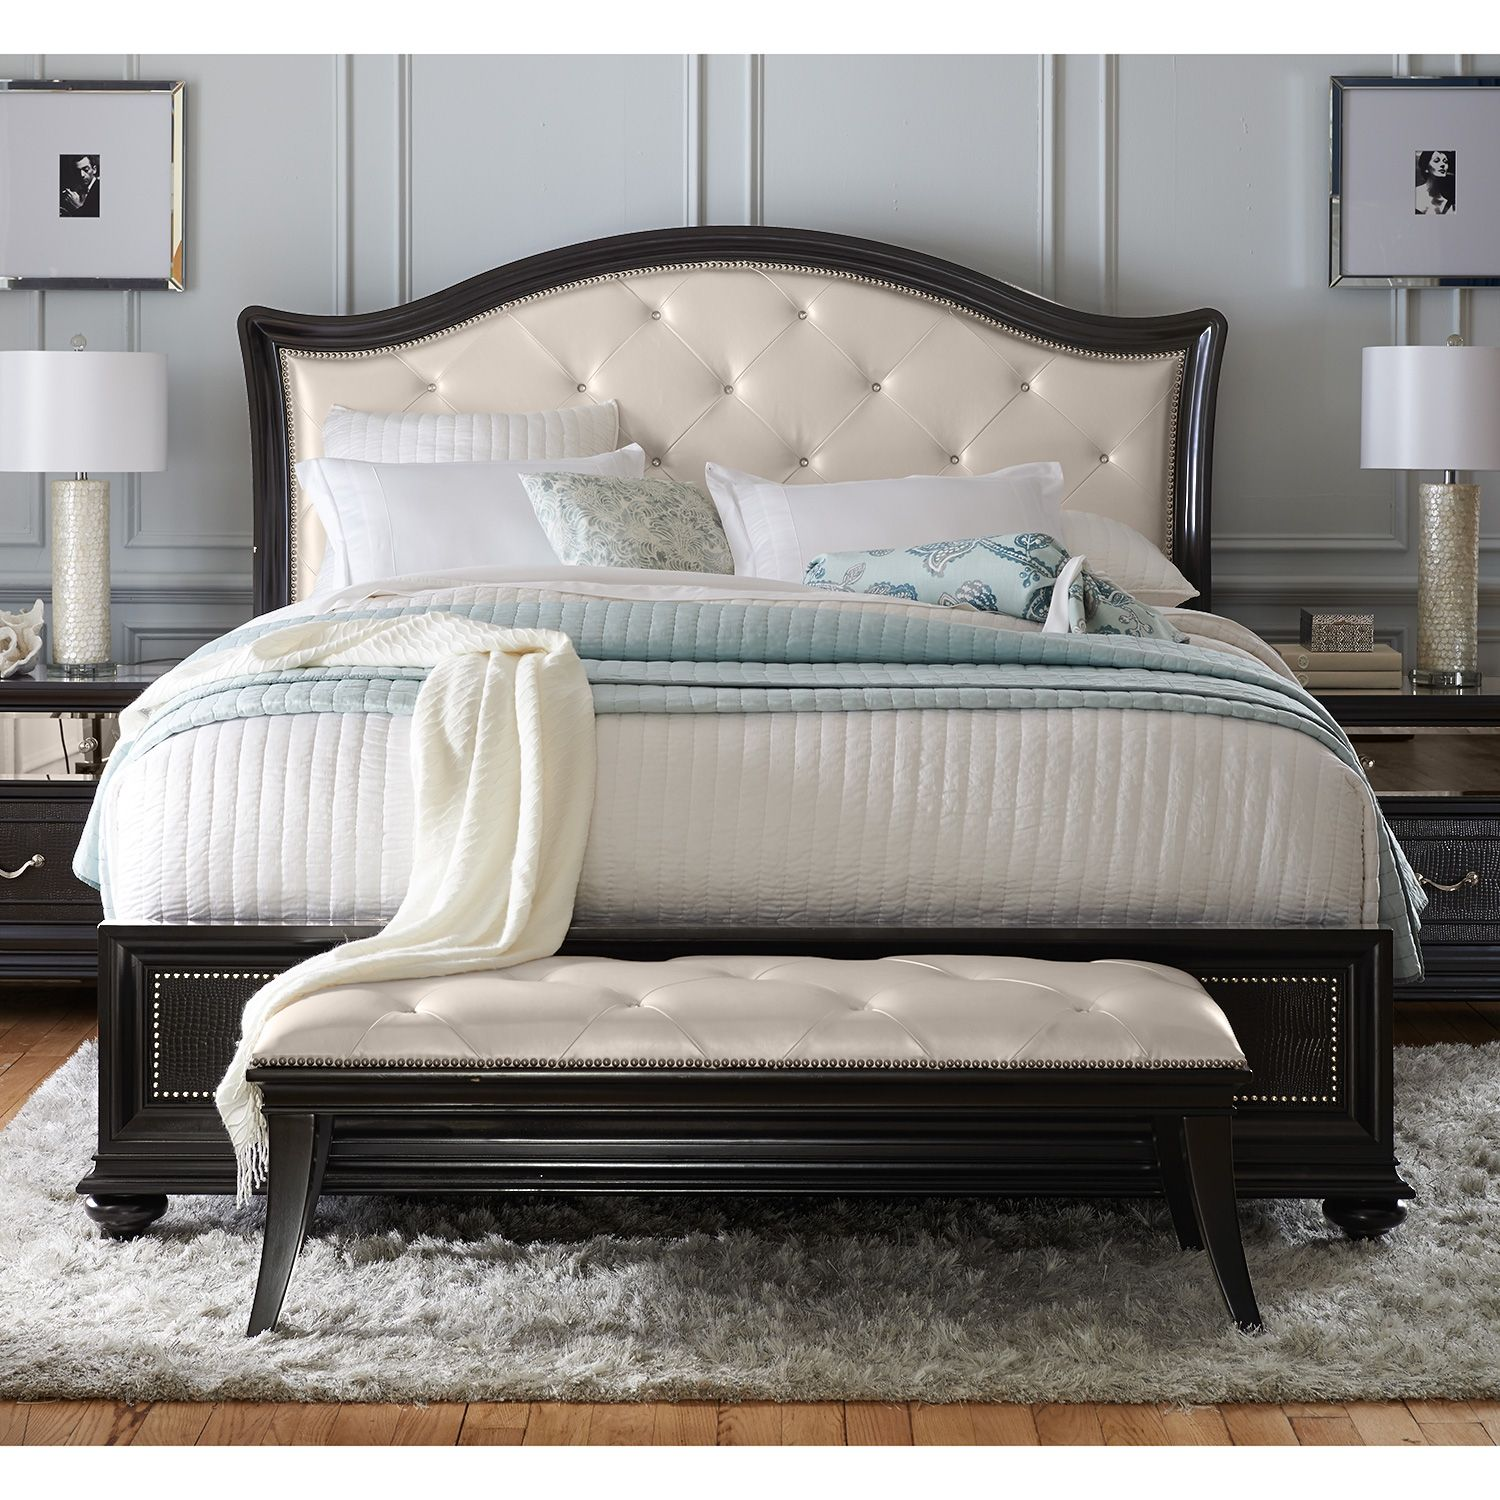 Best Marilyn Queen Bed American Signature Furniture Value 400 x 300